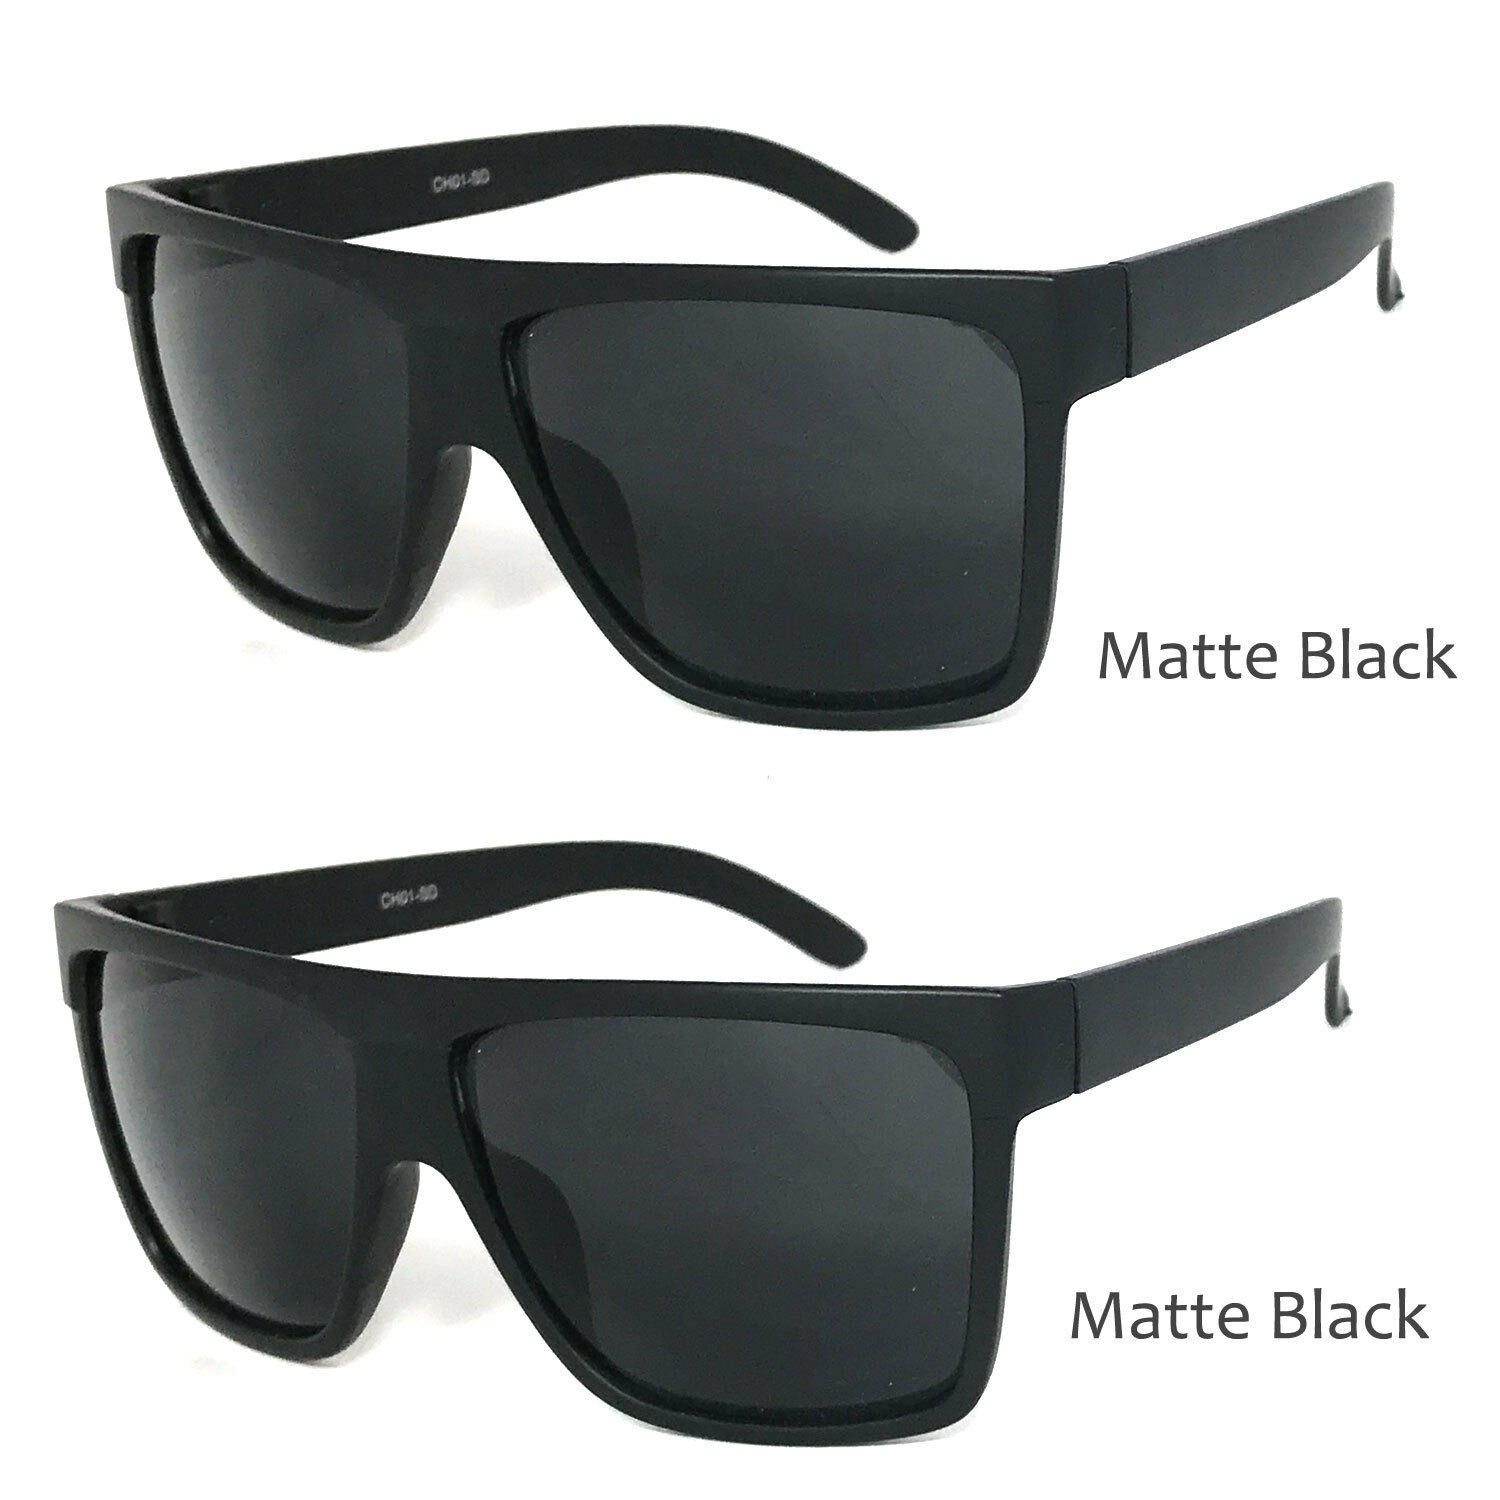 6d926691b7a6 You are bidding on 2 of the above. 2 Pairs Large Flat Top Sunglasses Matte  Black ...